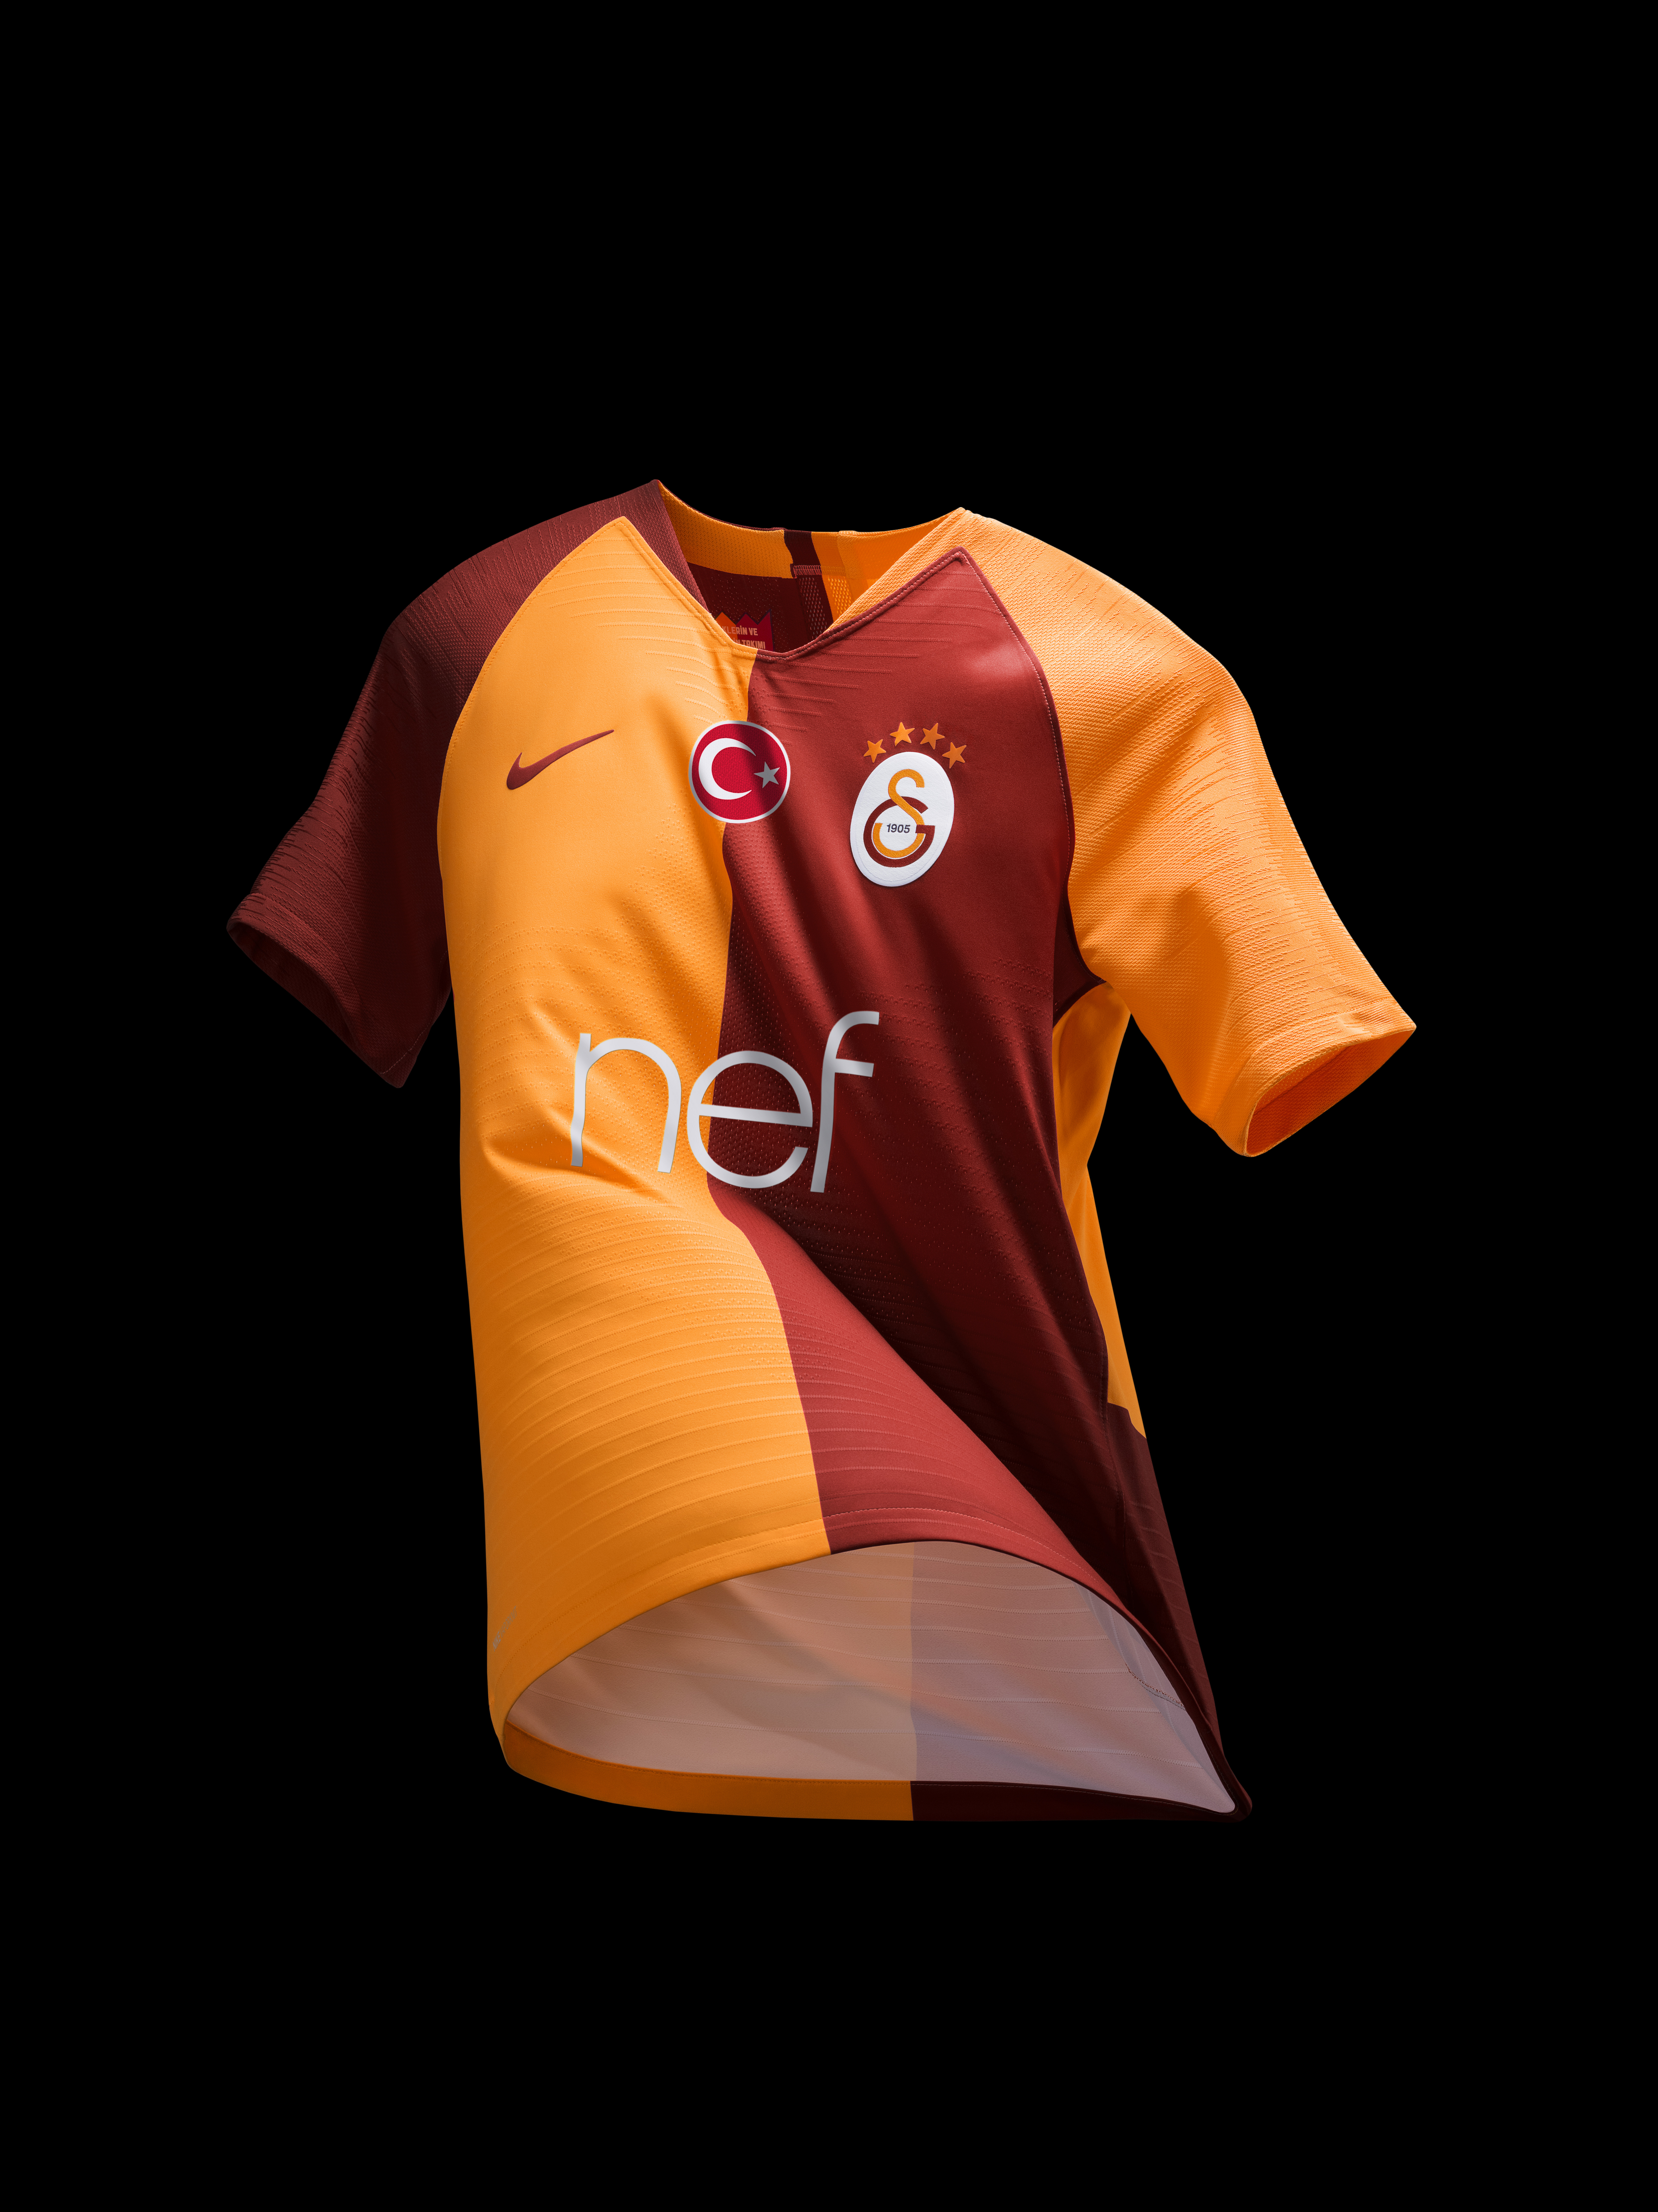 Galatasaray Home Kit 2018-19 EMBED ONLY bb9428036